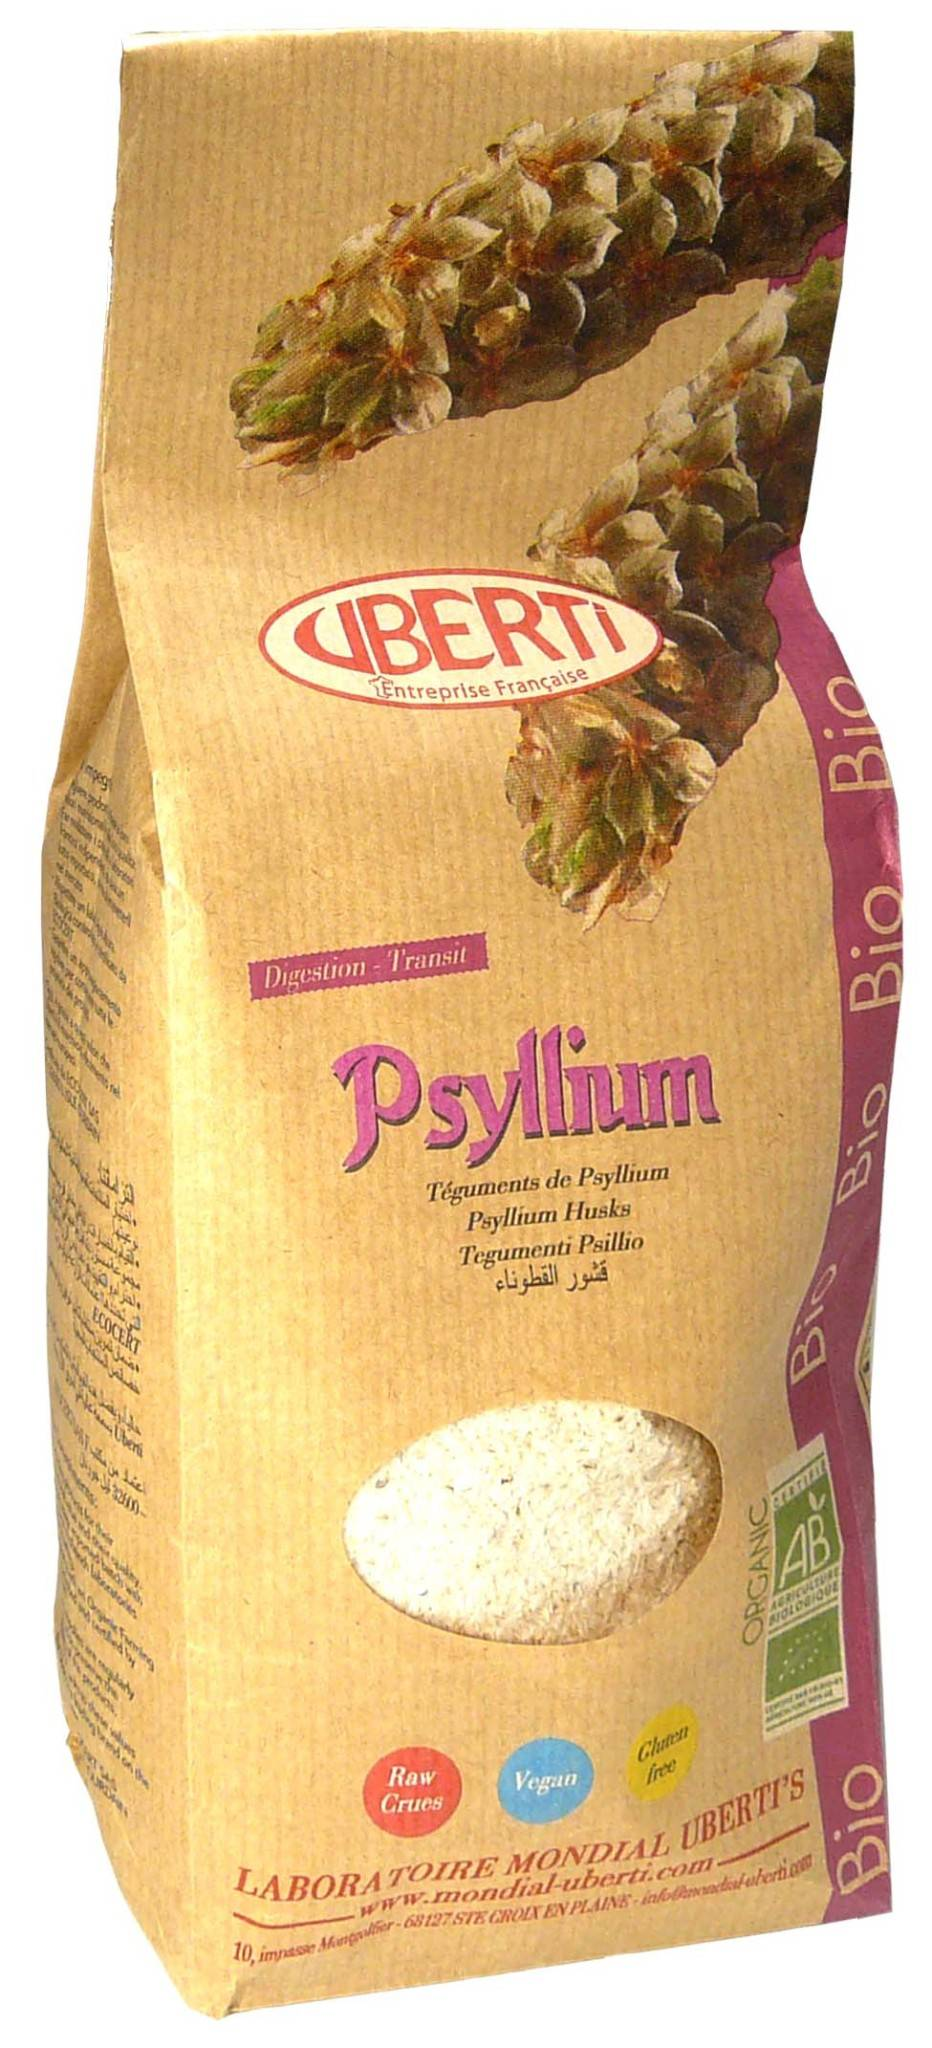 PHARM UP Uberti psyllium bio 300g